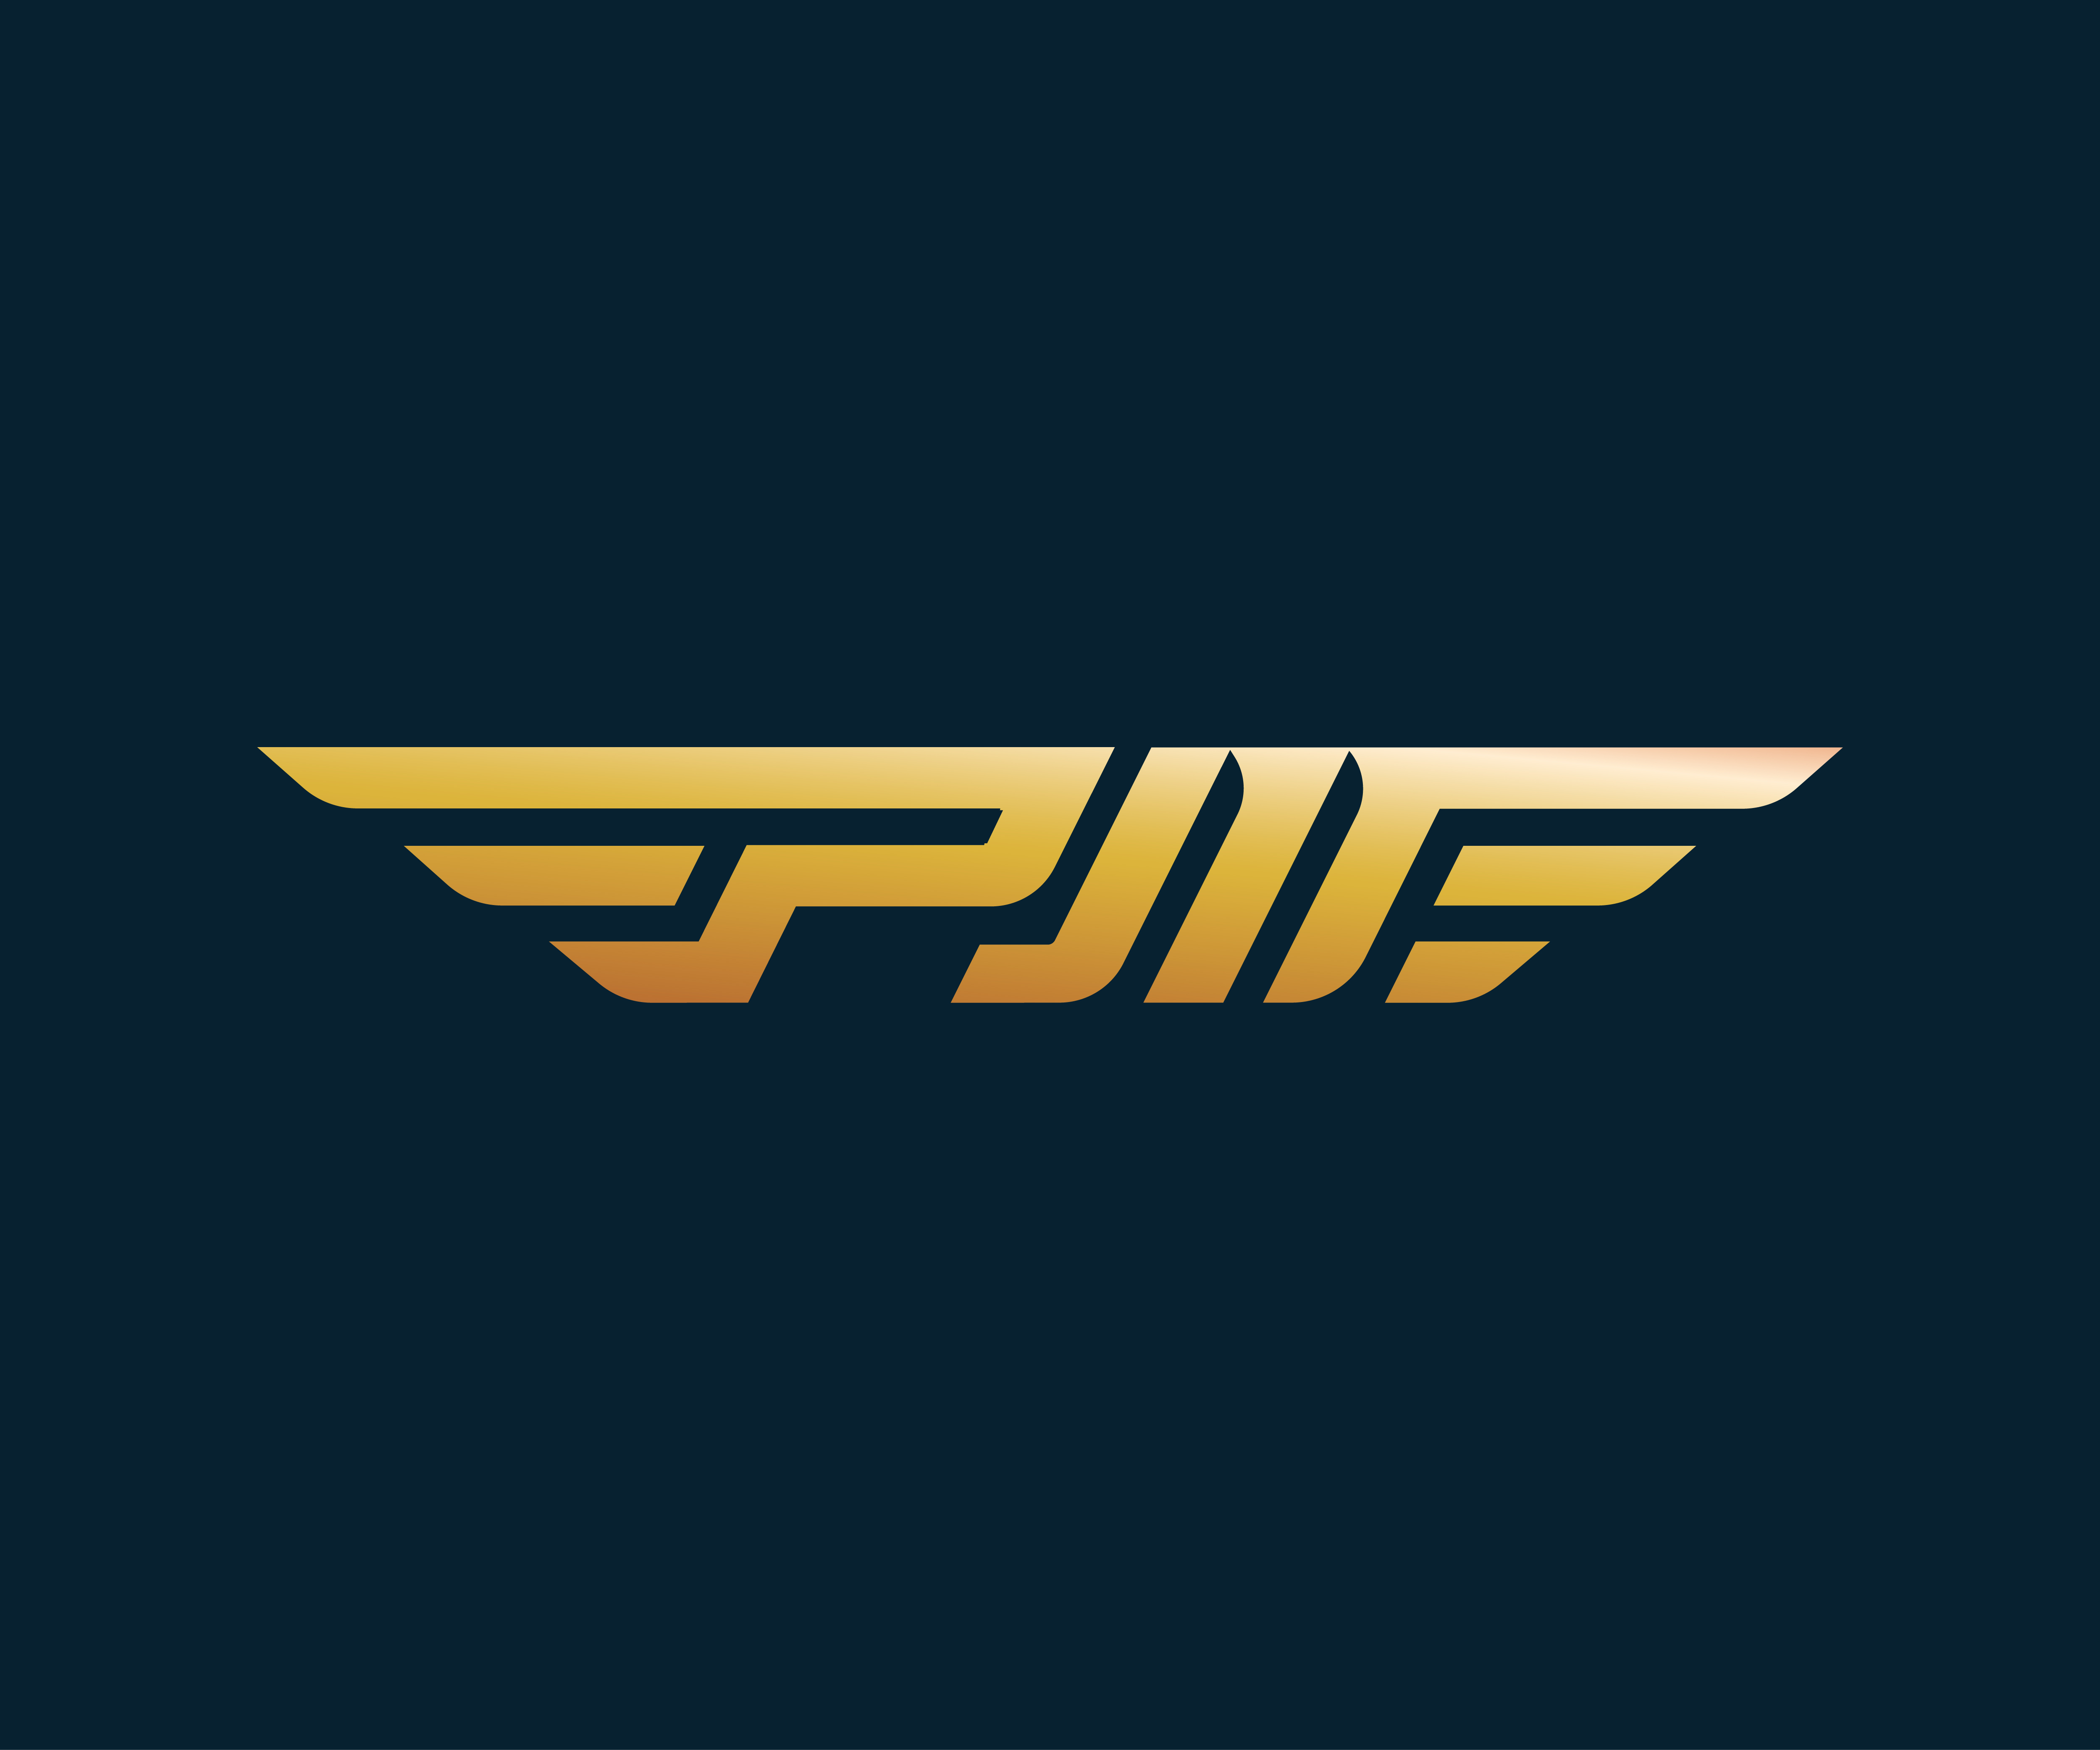 Speed Car Logo Template: Letter PM Wing Logo Design Concept Template